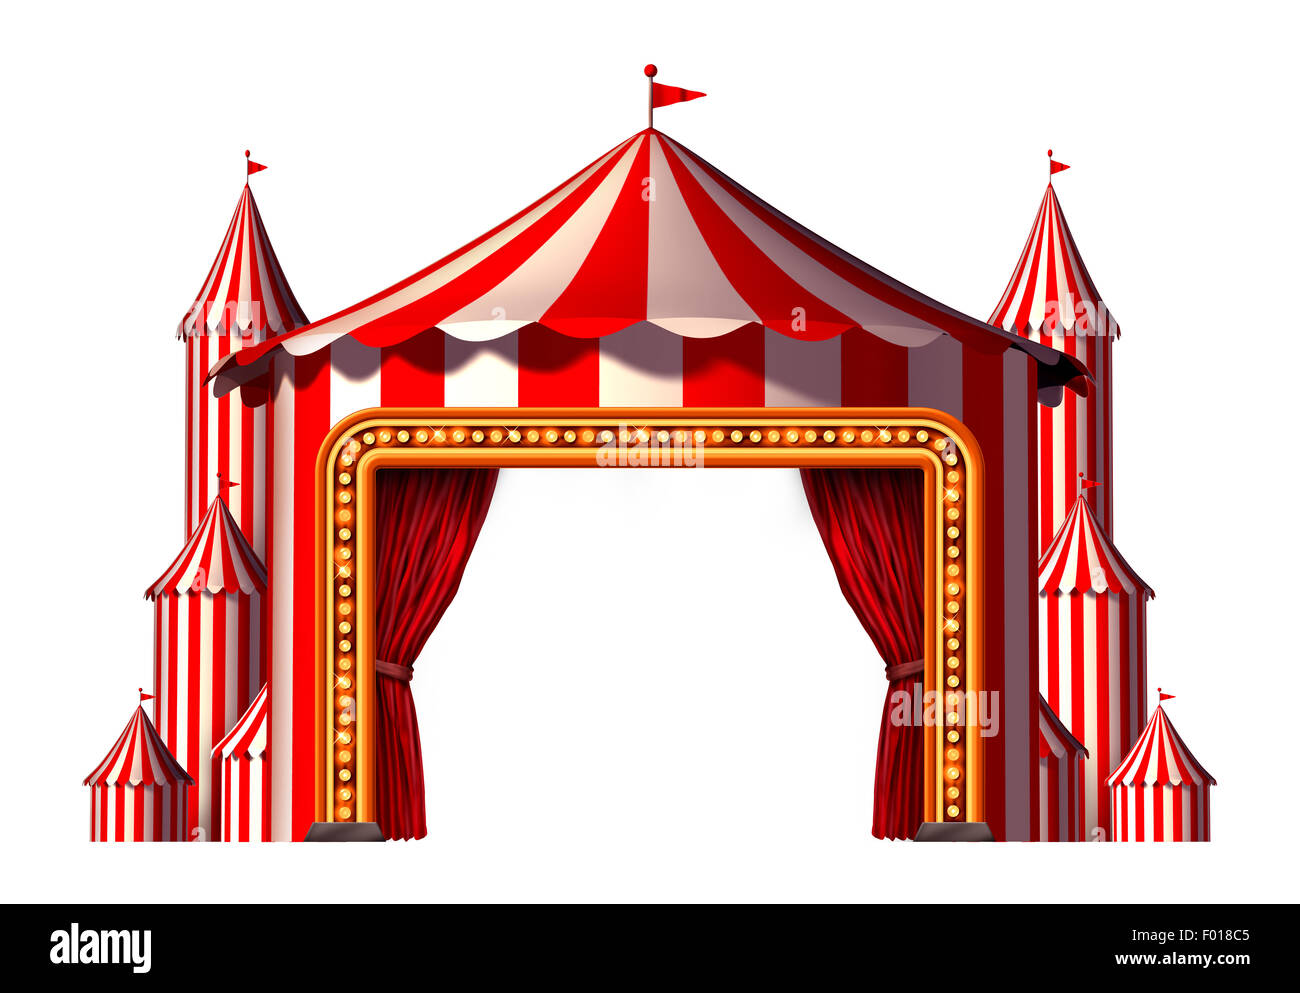 Circus blank space stage tent design element as a group of big top carnival tents with a red curtain opening entrance - Stock Image